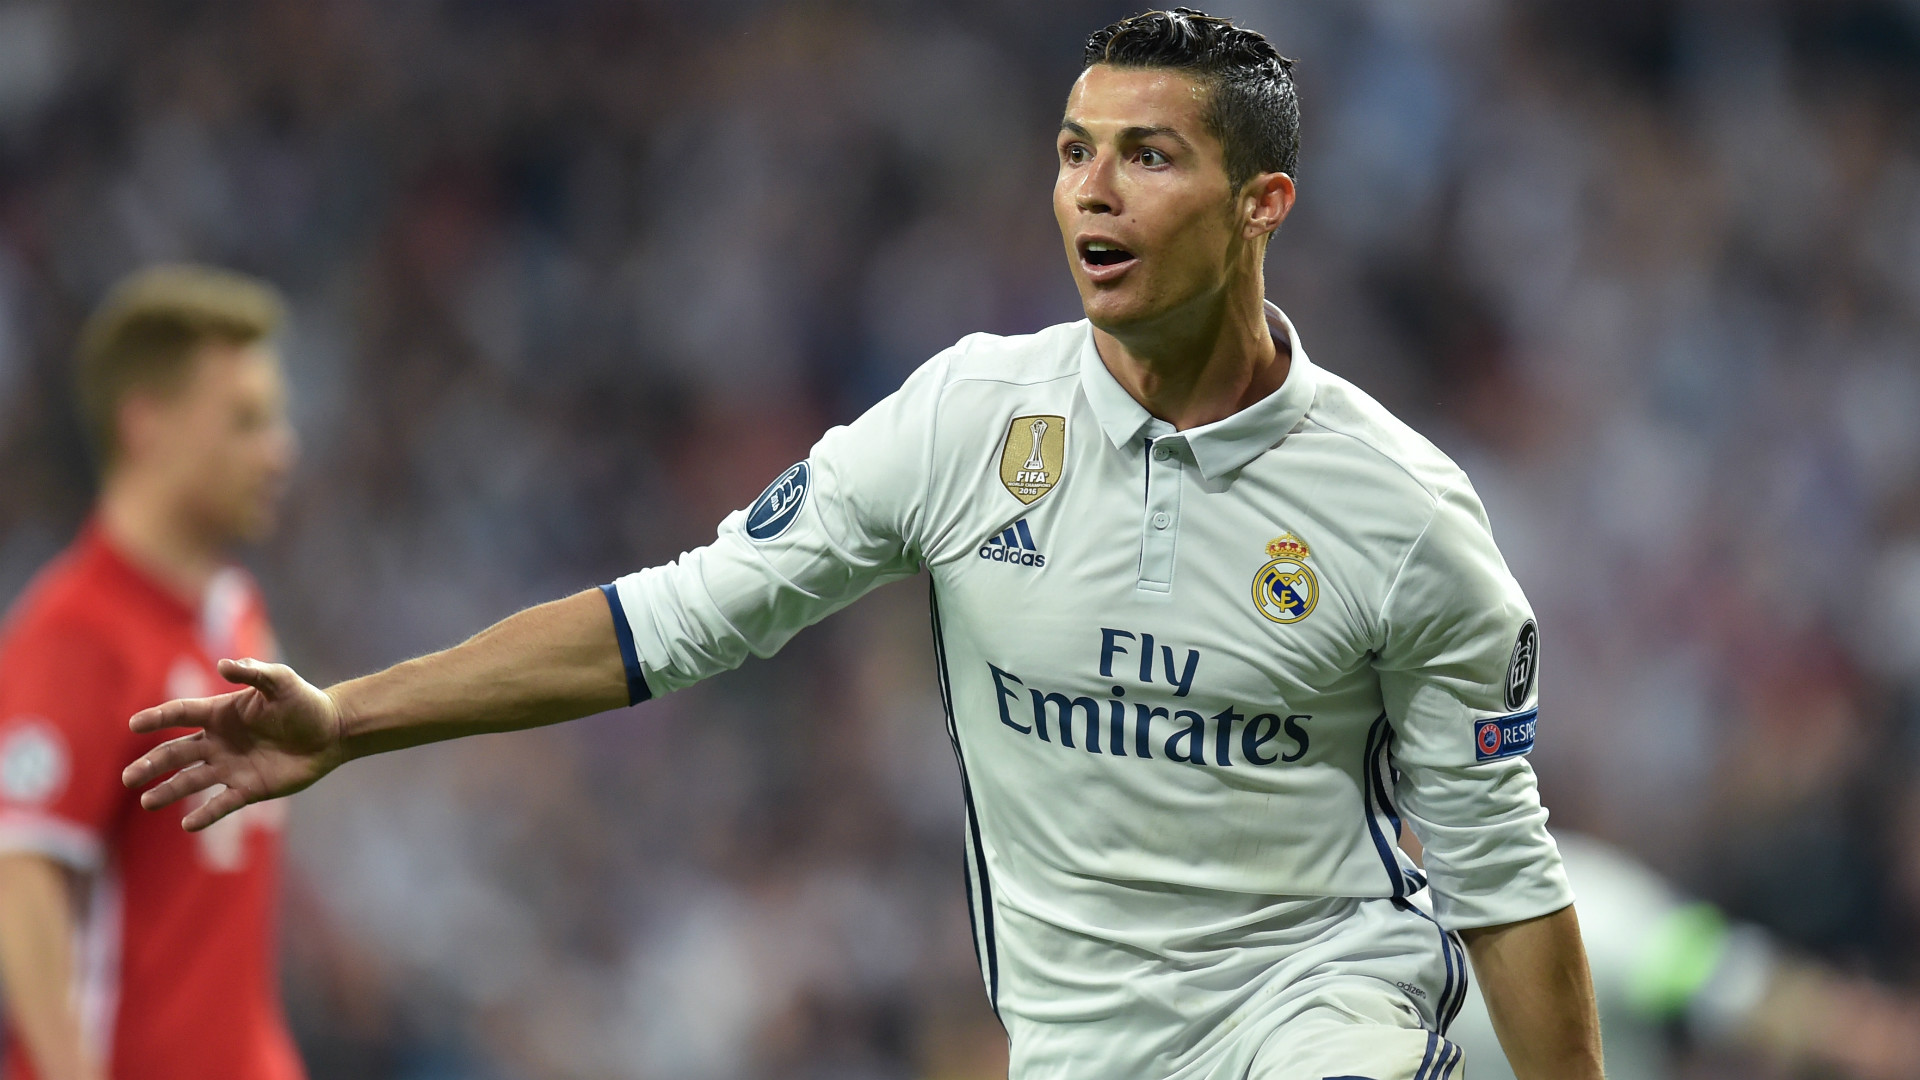 El Clasico: Real Madrid vs Barcelona live TV channel, free stream, kick-off time & match preview